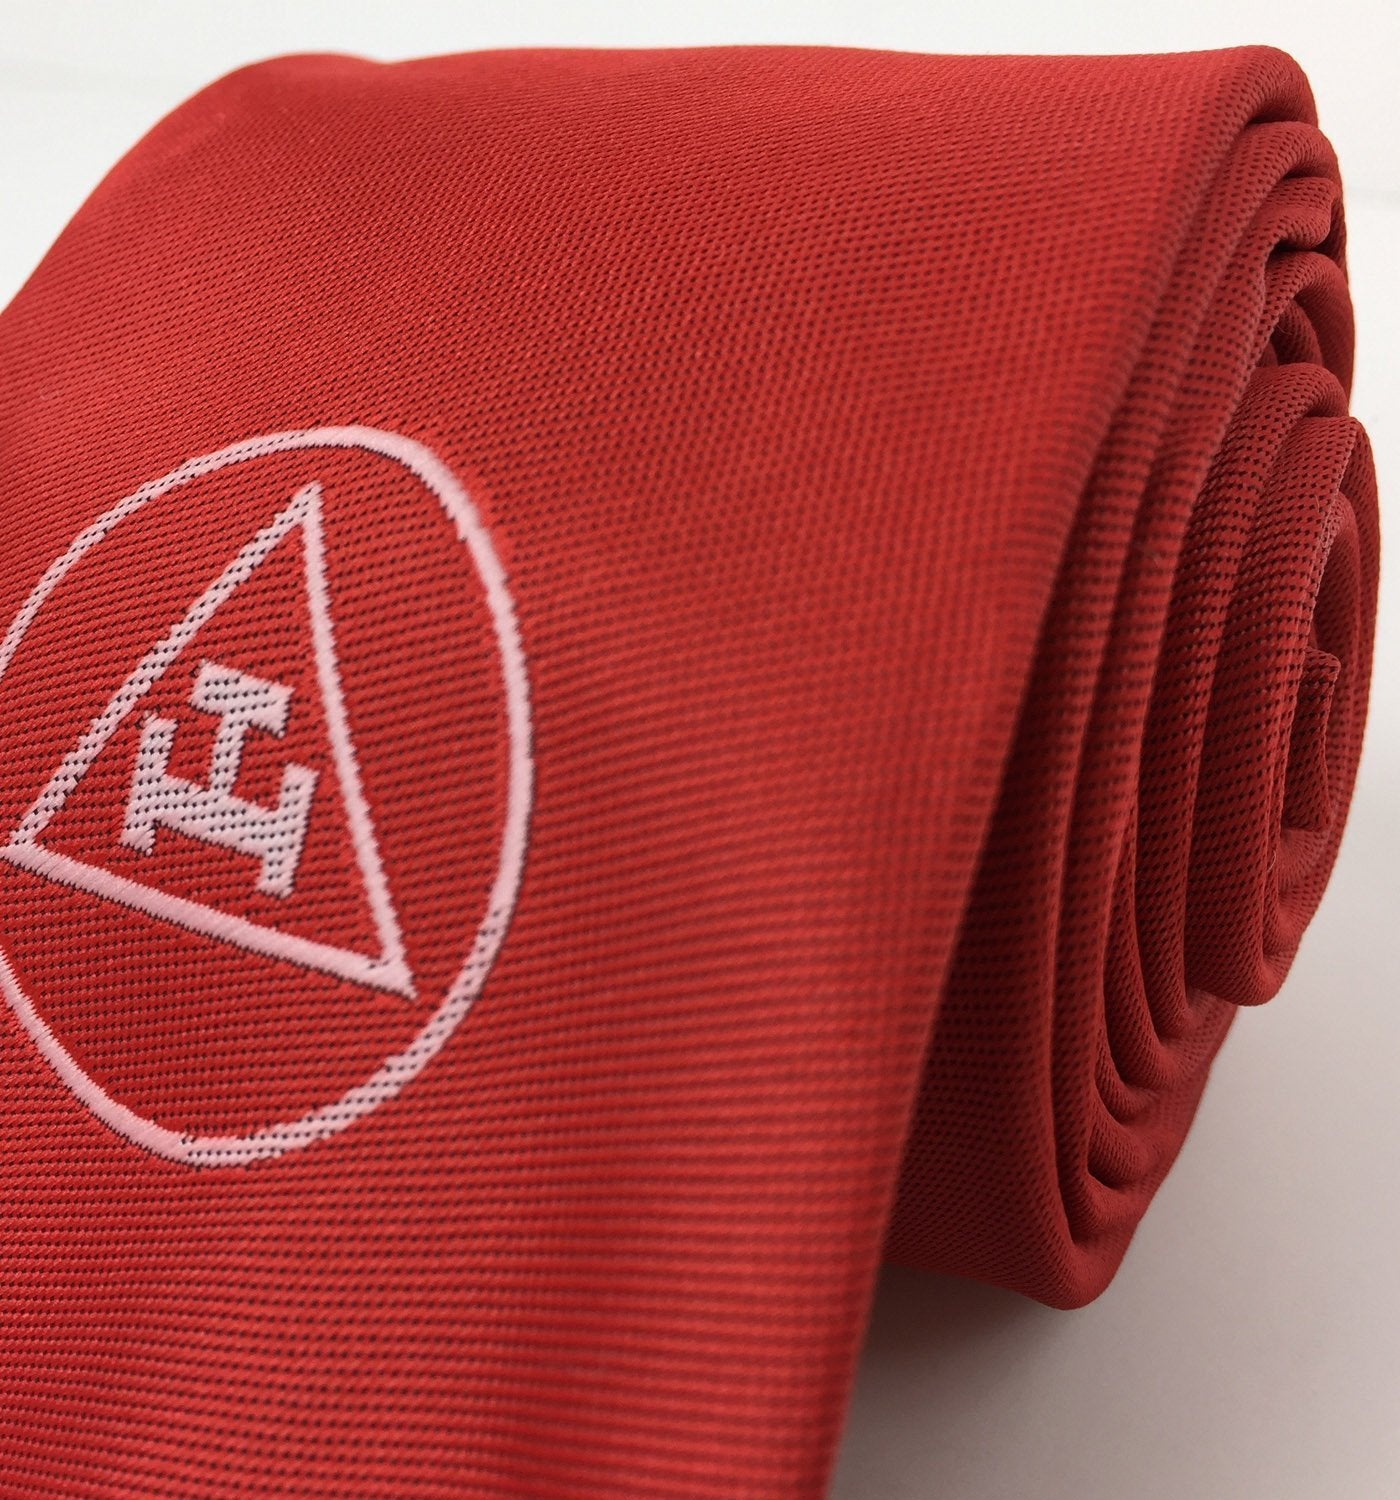 Masonic Royal Arch Red Silk Tie with embroided Logo RA Regalia - Bricks Masons